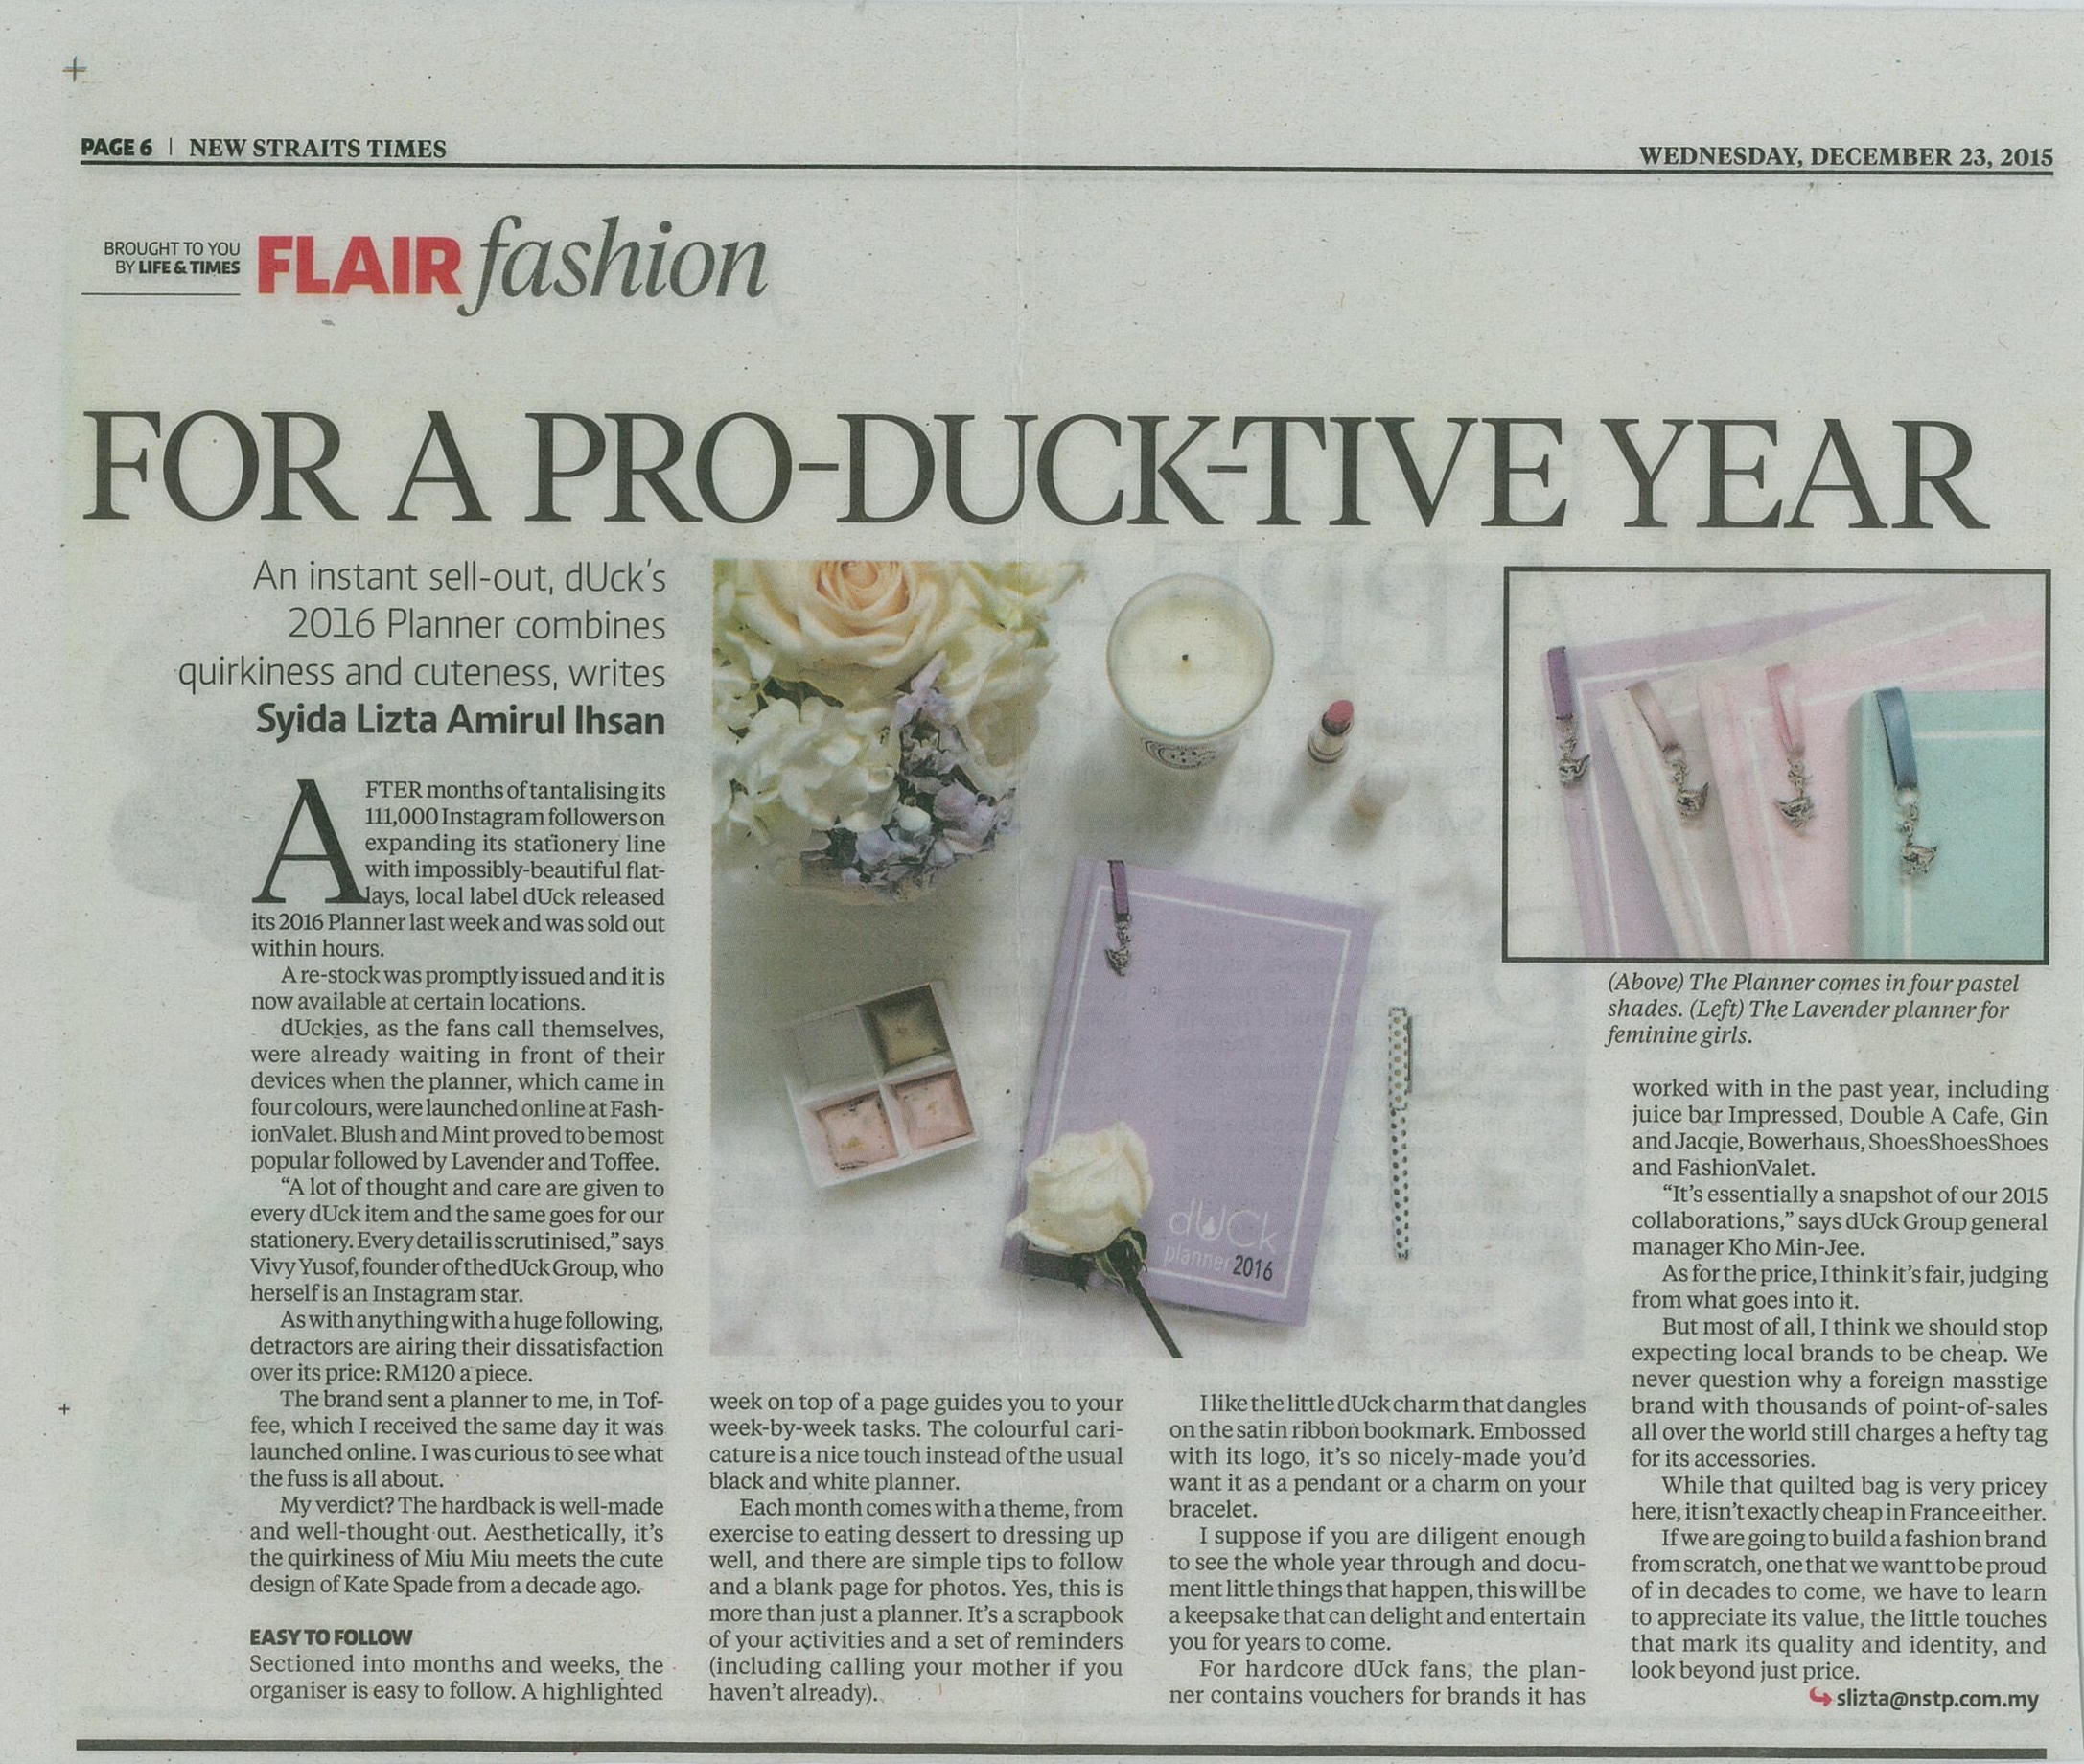 The New Straits Times - December